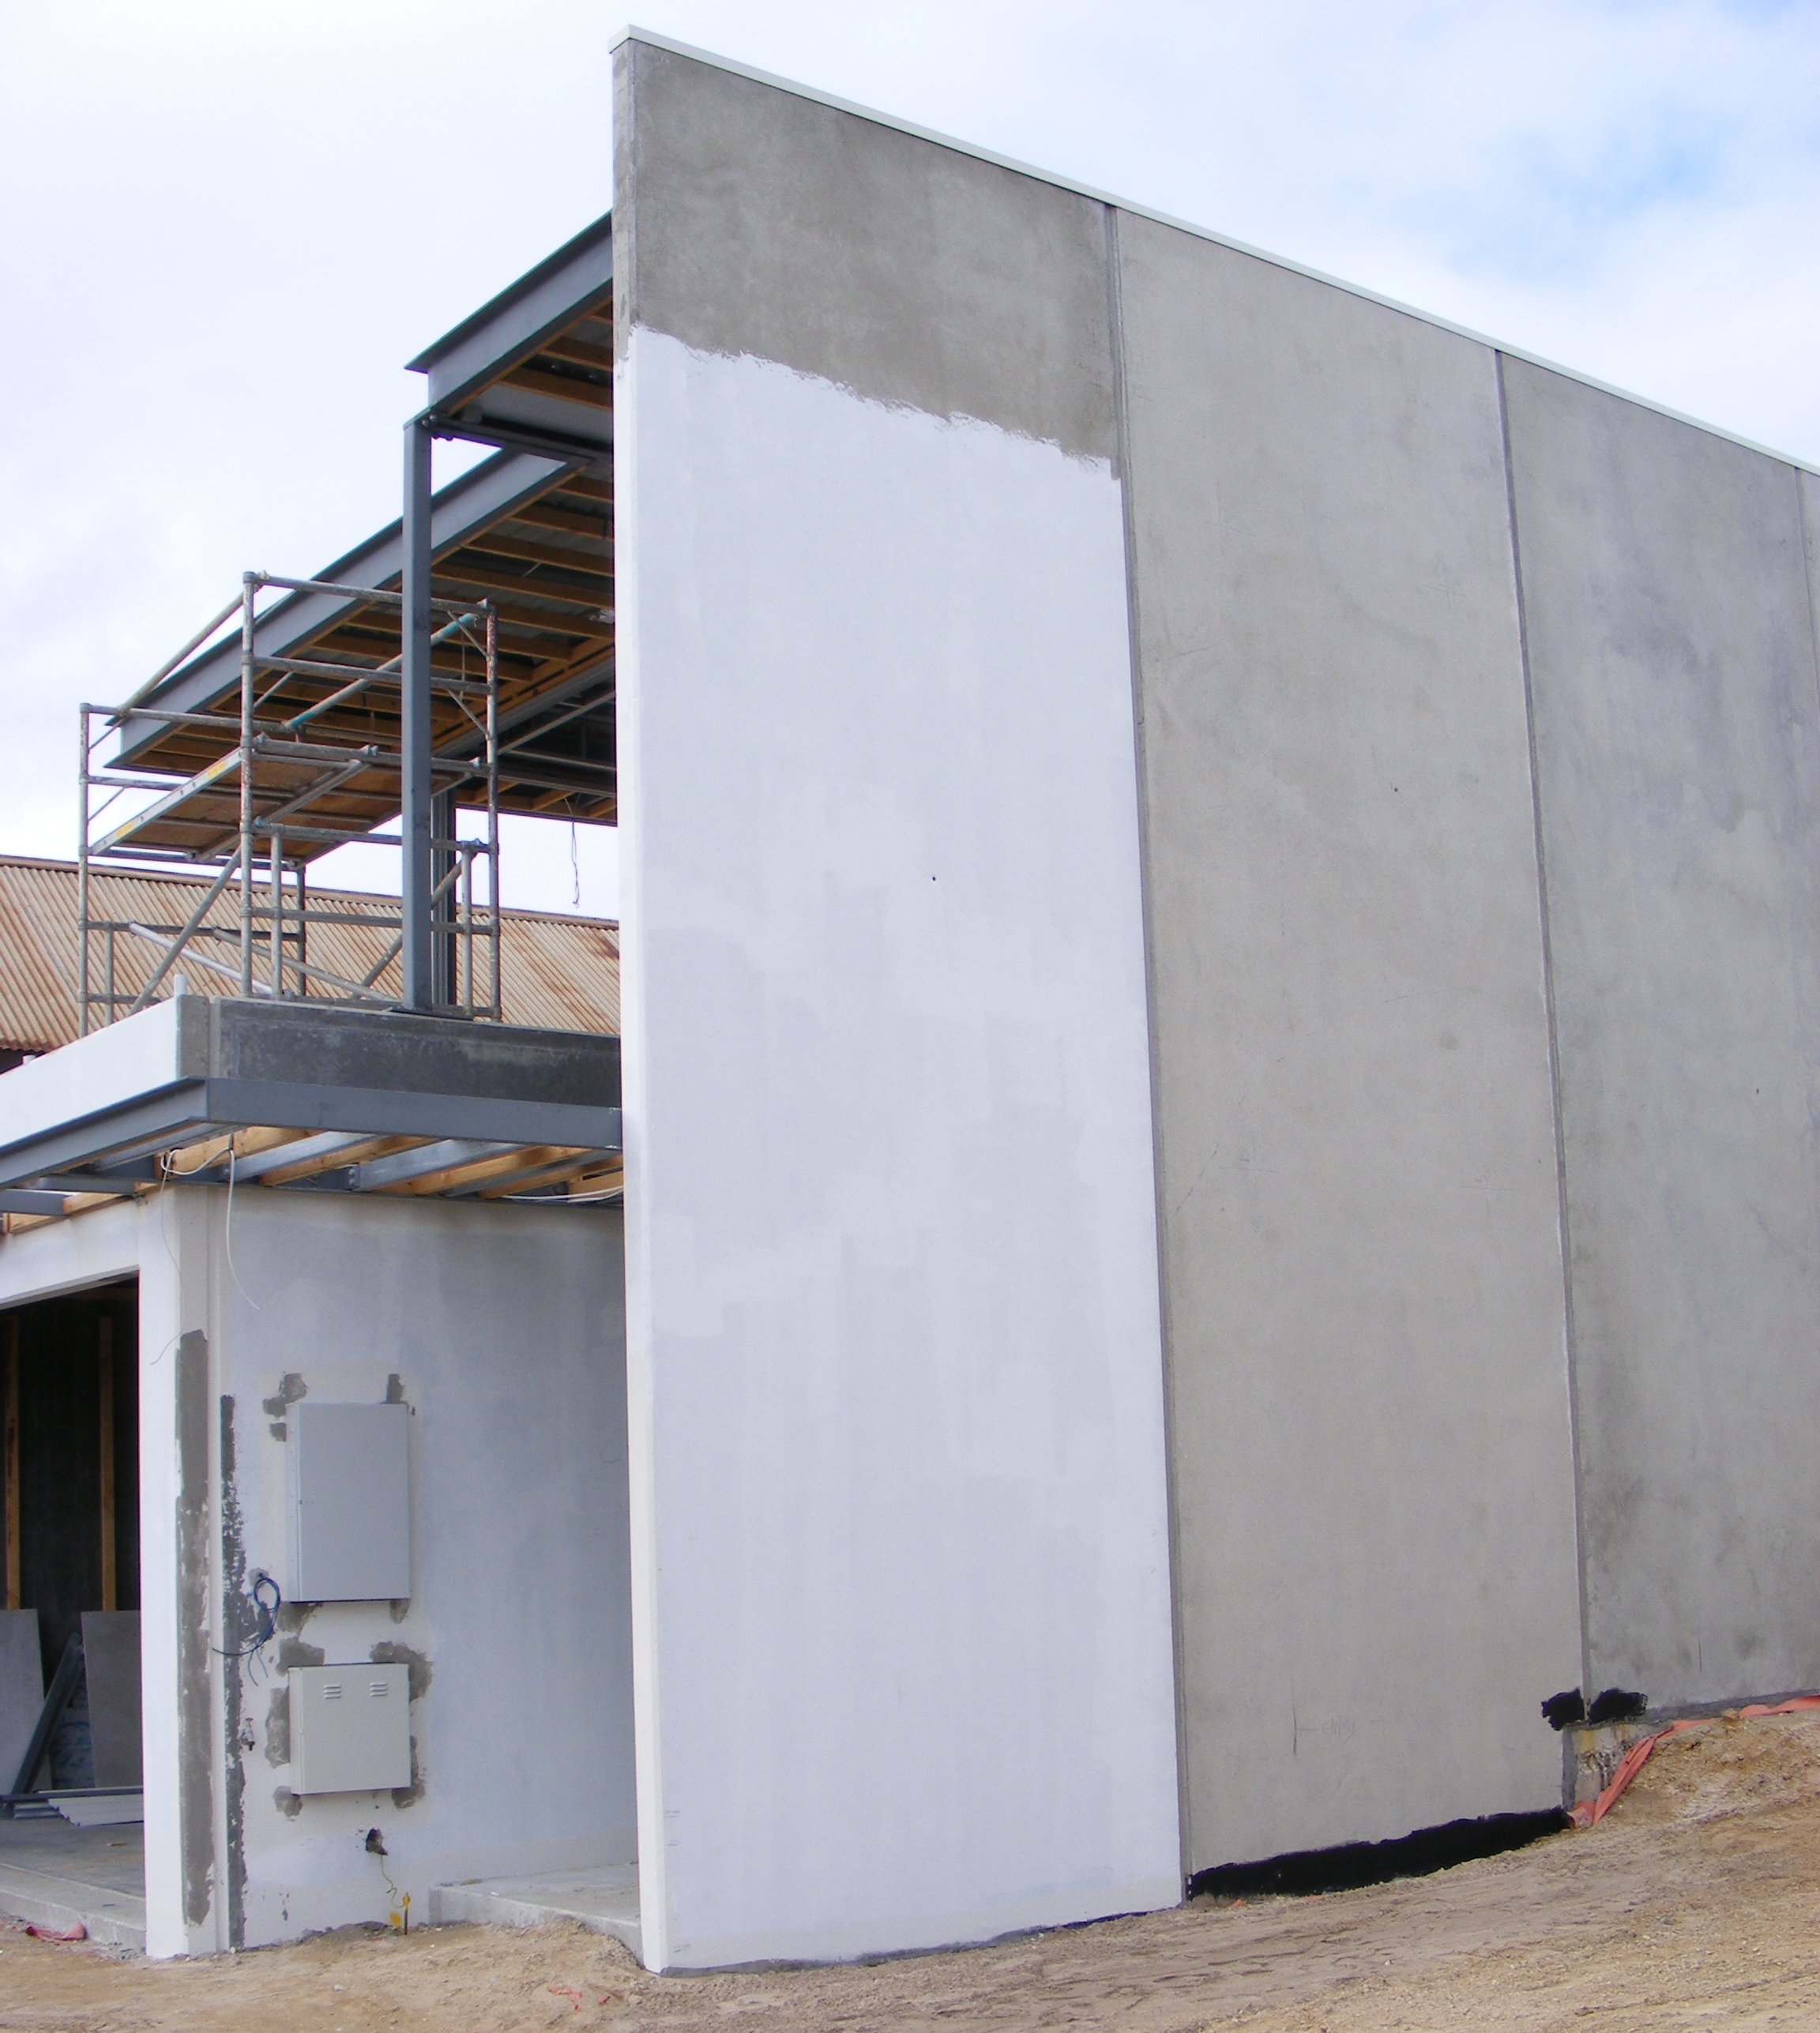 Precast concrete wikidwelling fandom powered by wikia for Building a concrete house